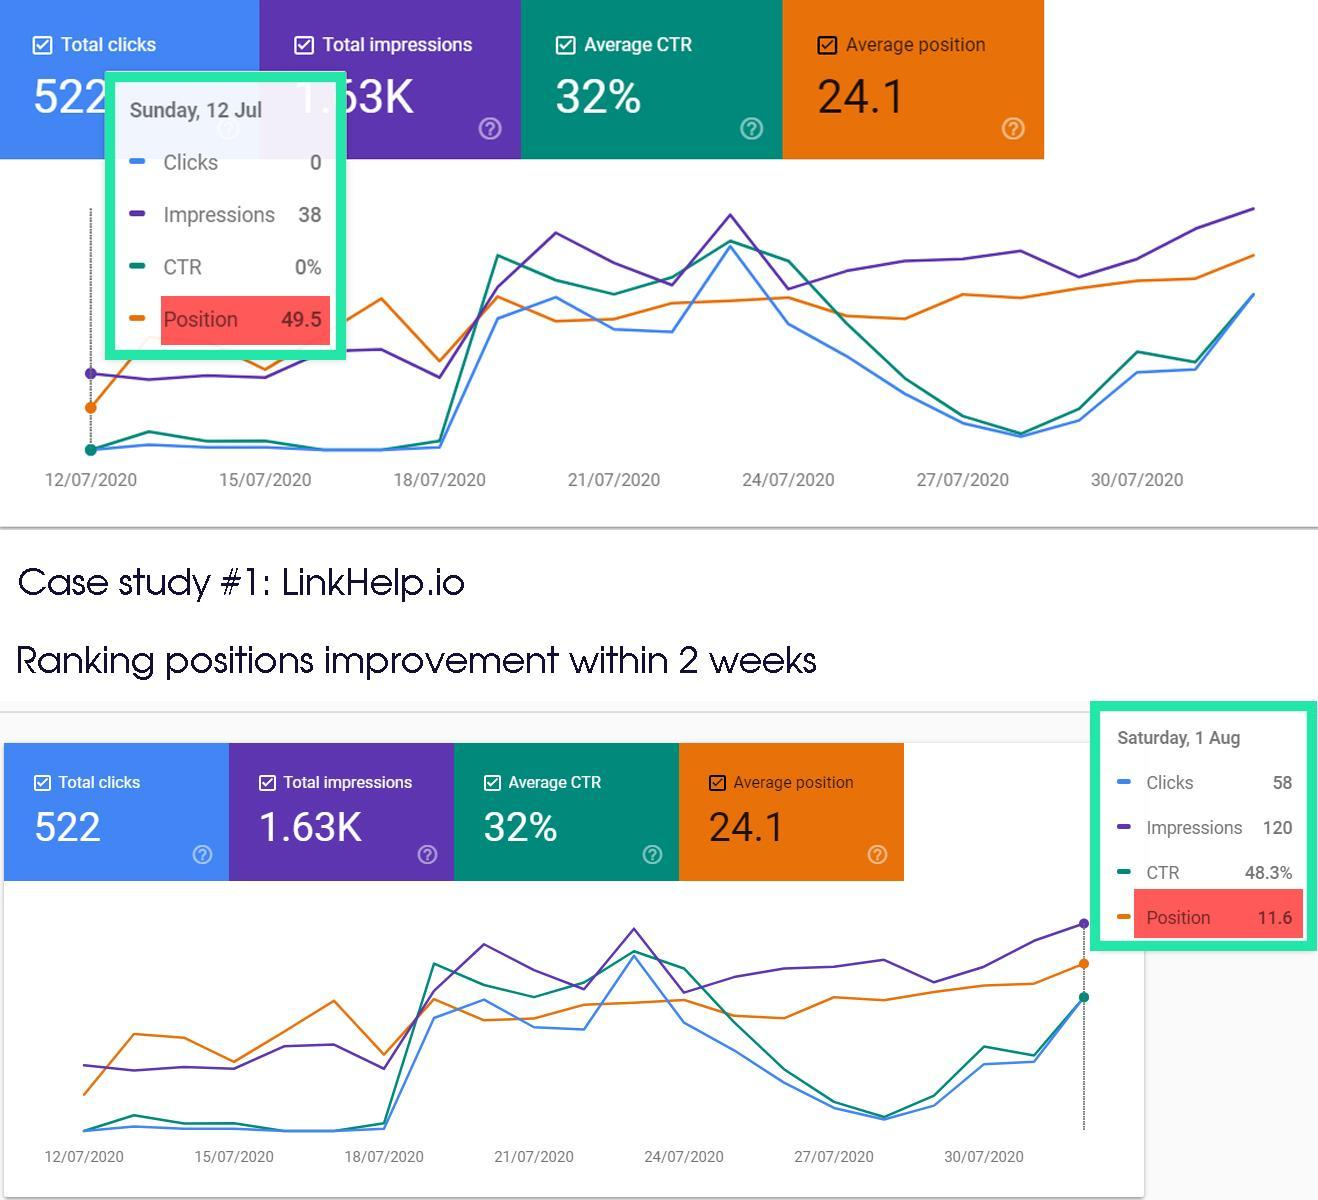 After 2 weeks of using SearchSEO, the website linkhelp is ranking very high on Google